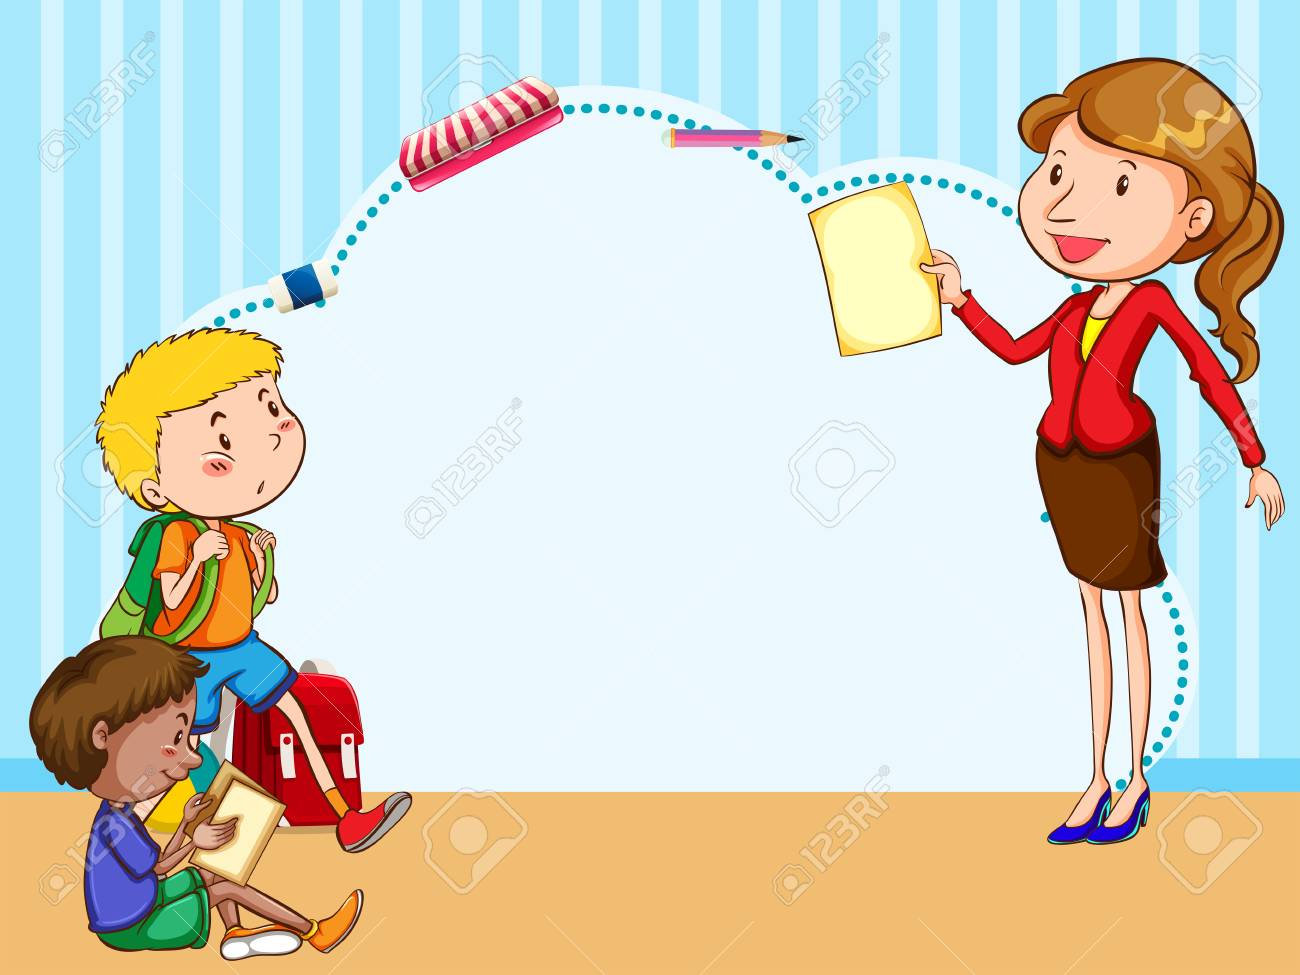 border template with kids and teacher illustration royalty free